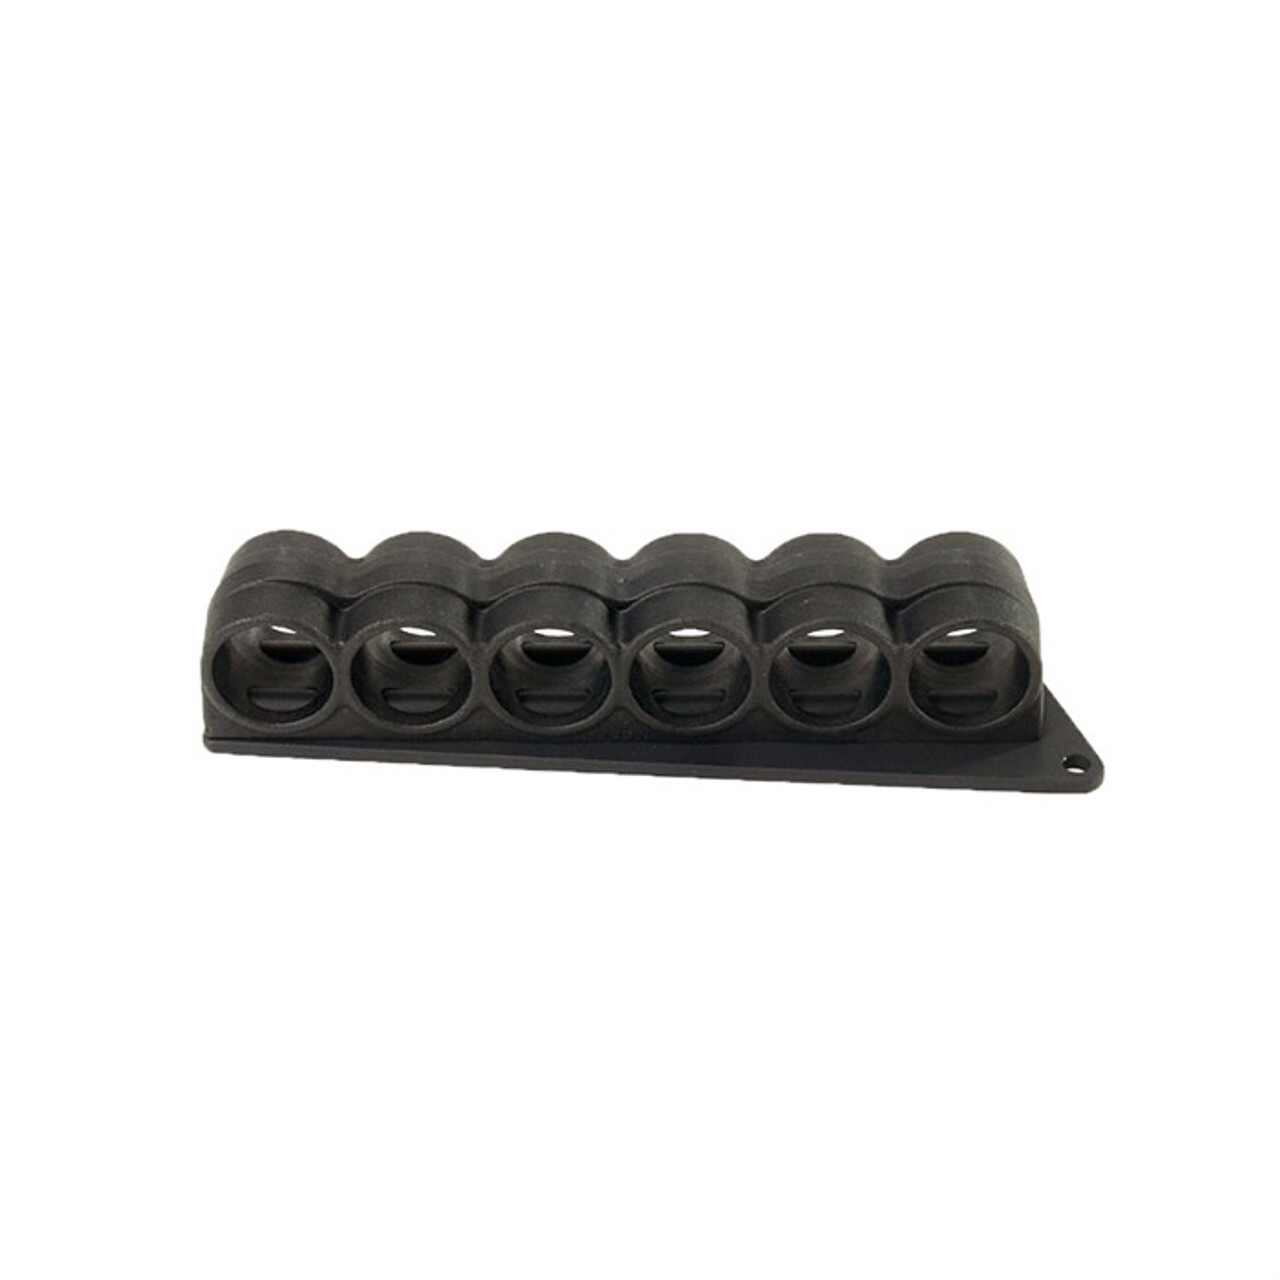 Mesa Tactical 6rd Shell holder for Mossberg 500/590/88